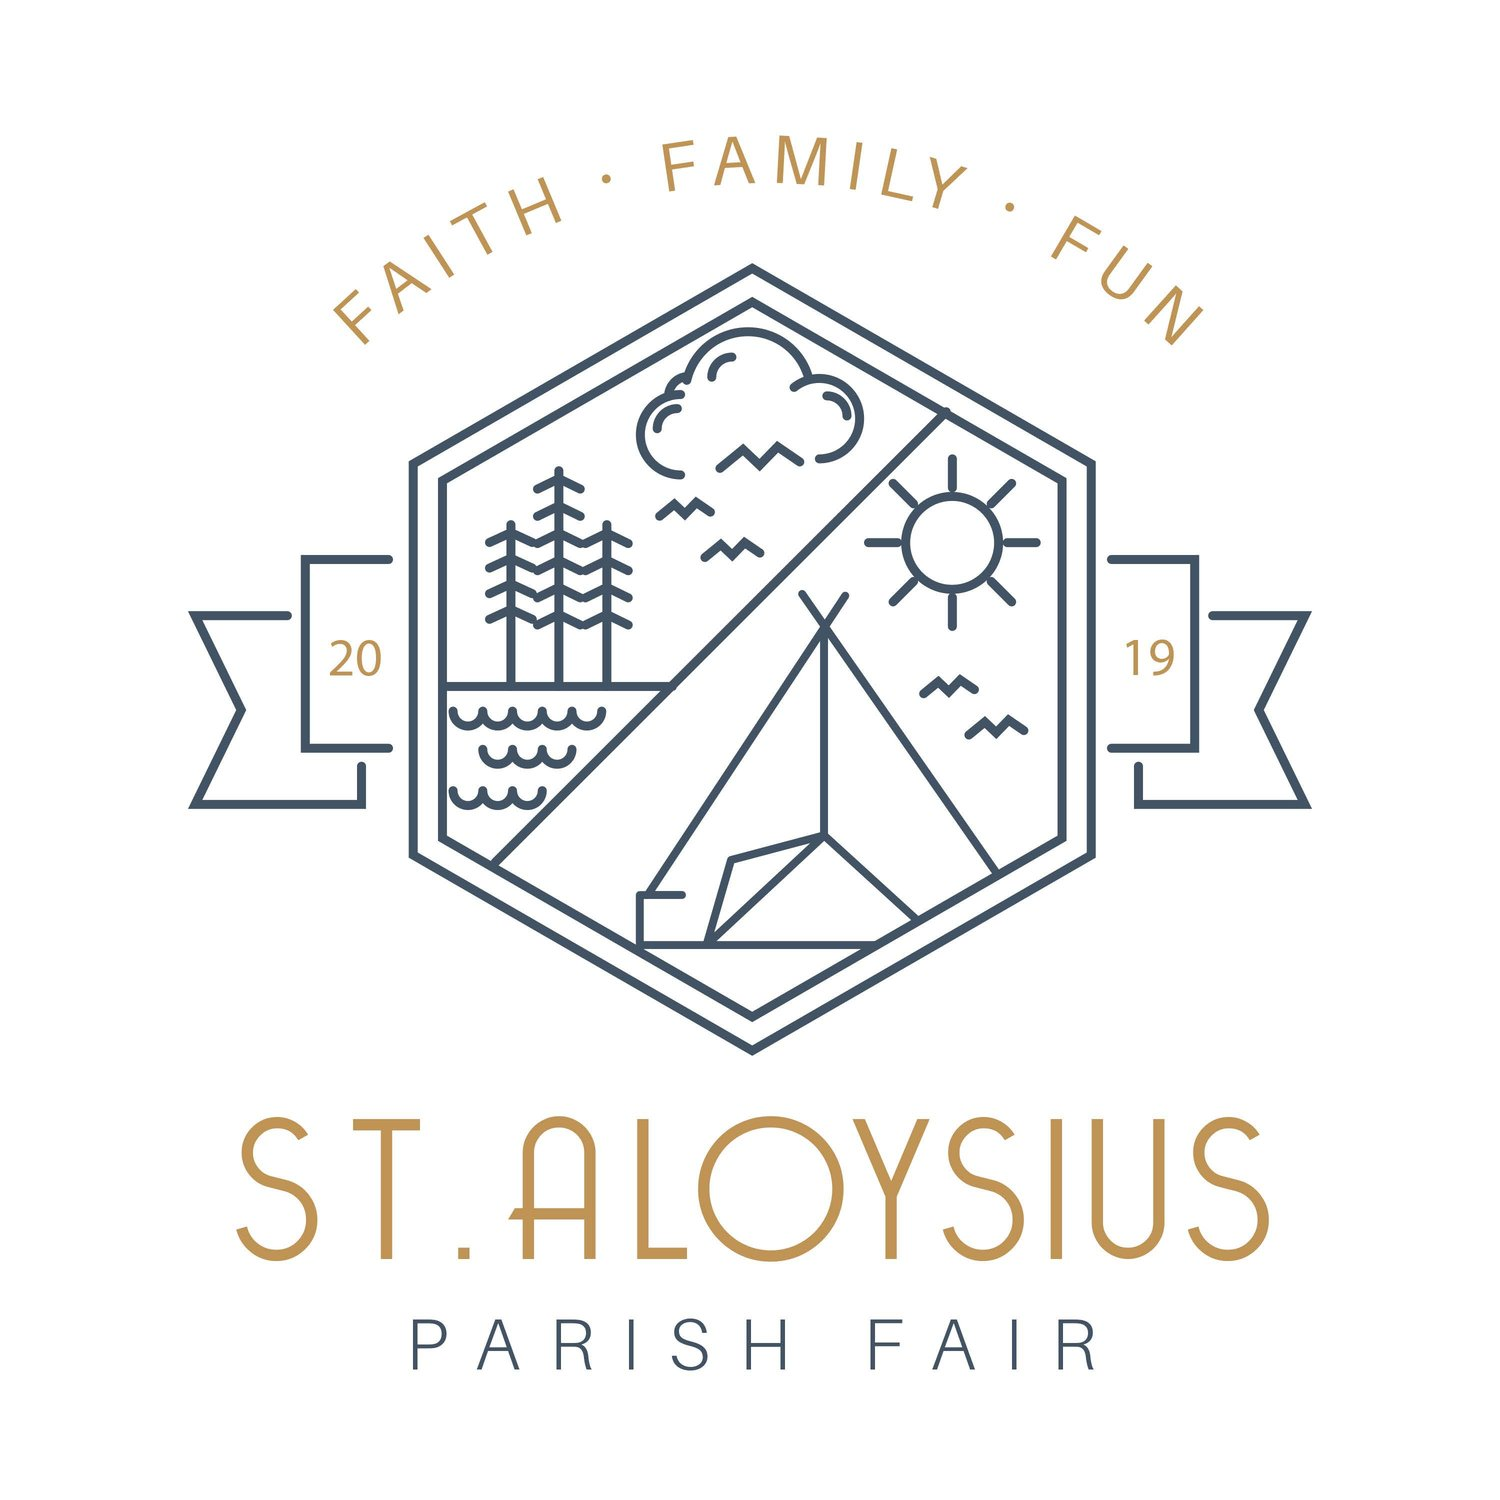 St. Aloysius Parish Fair